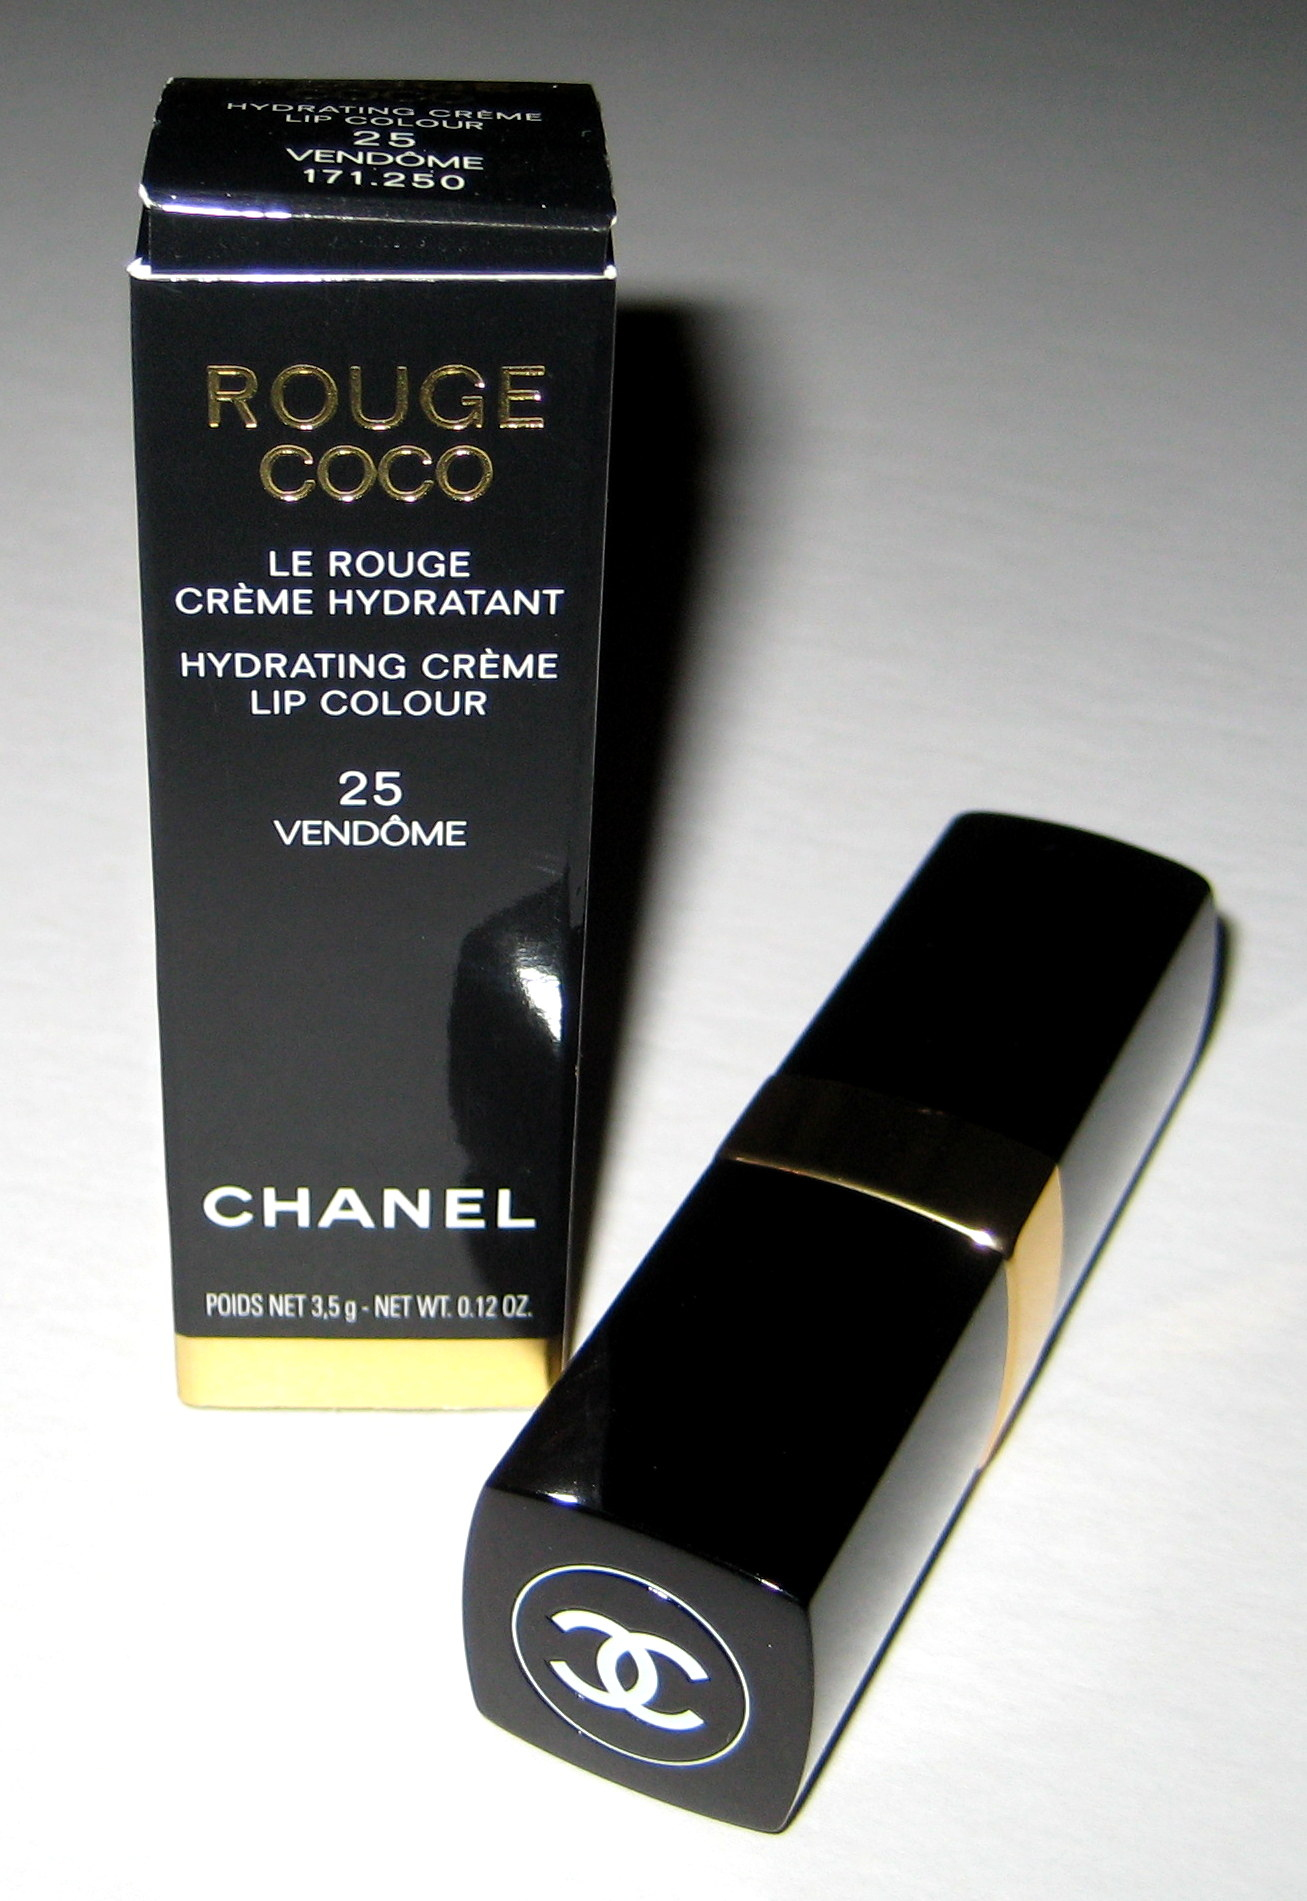 Chanel Rouge Coco in Vendome, tube and box